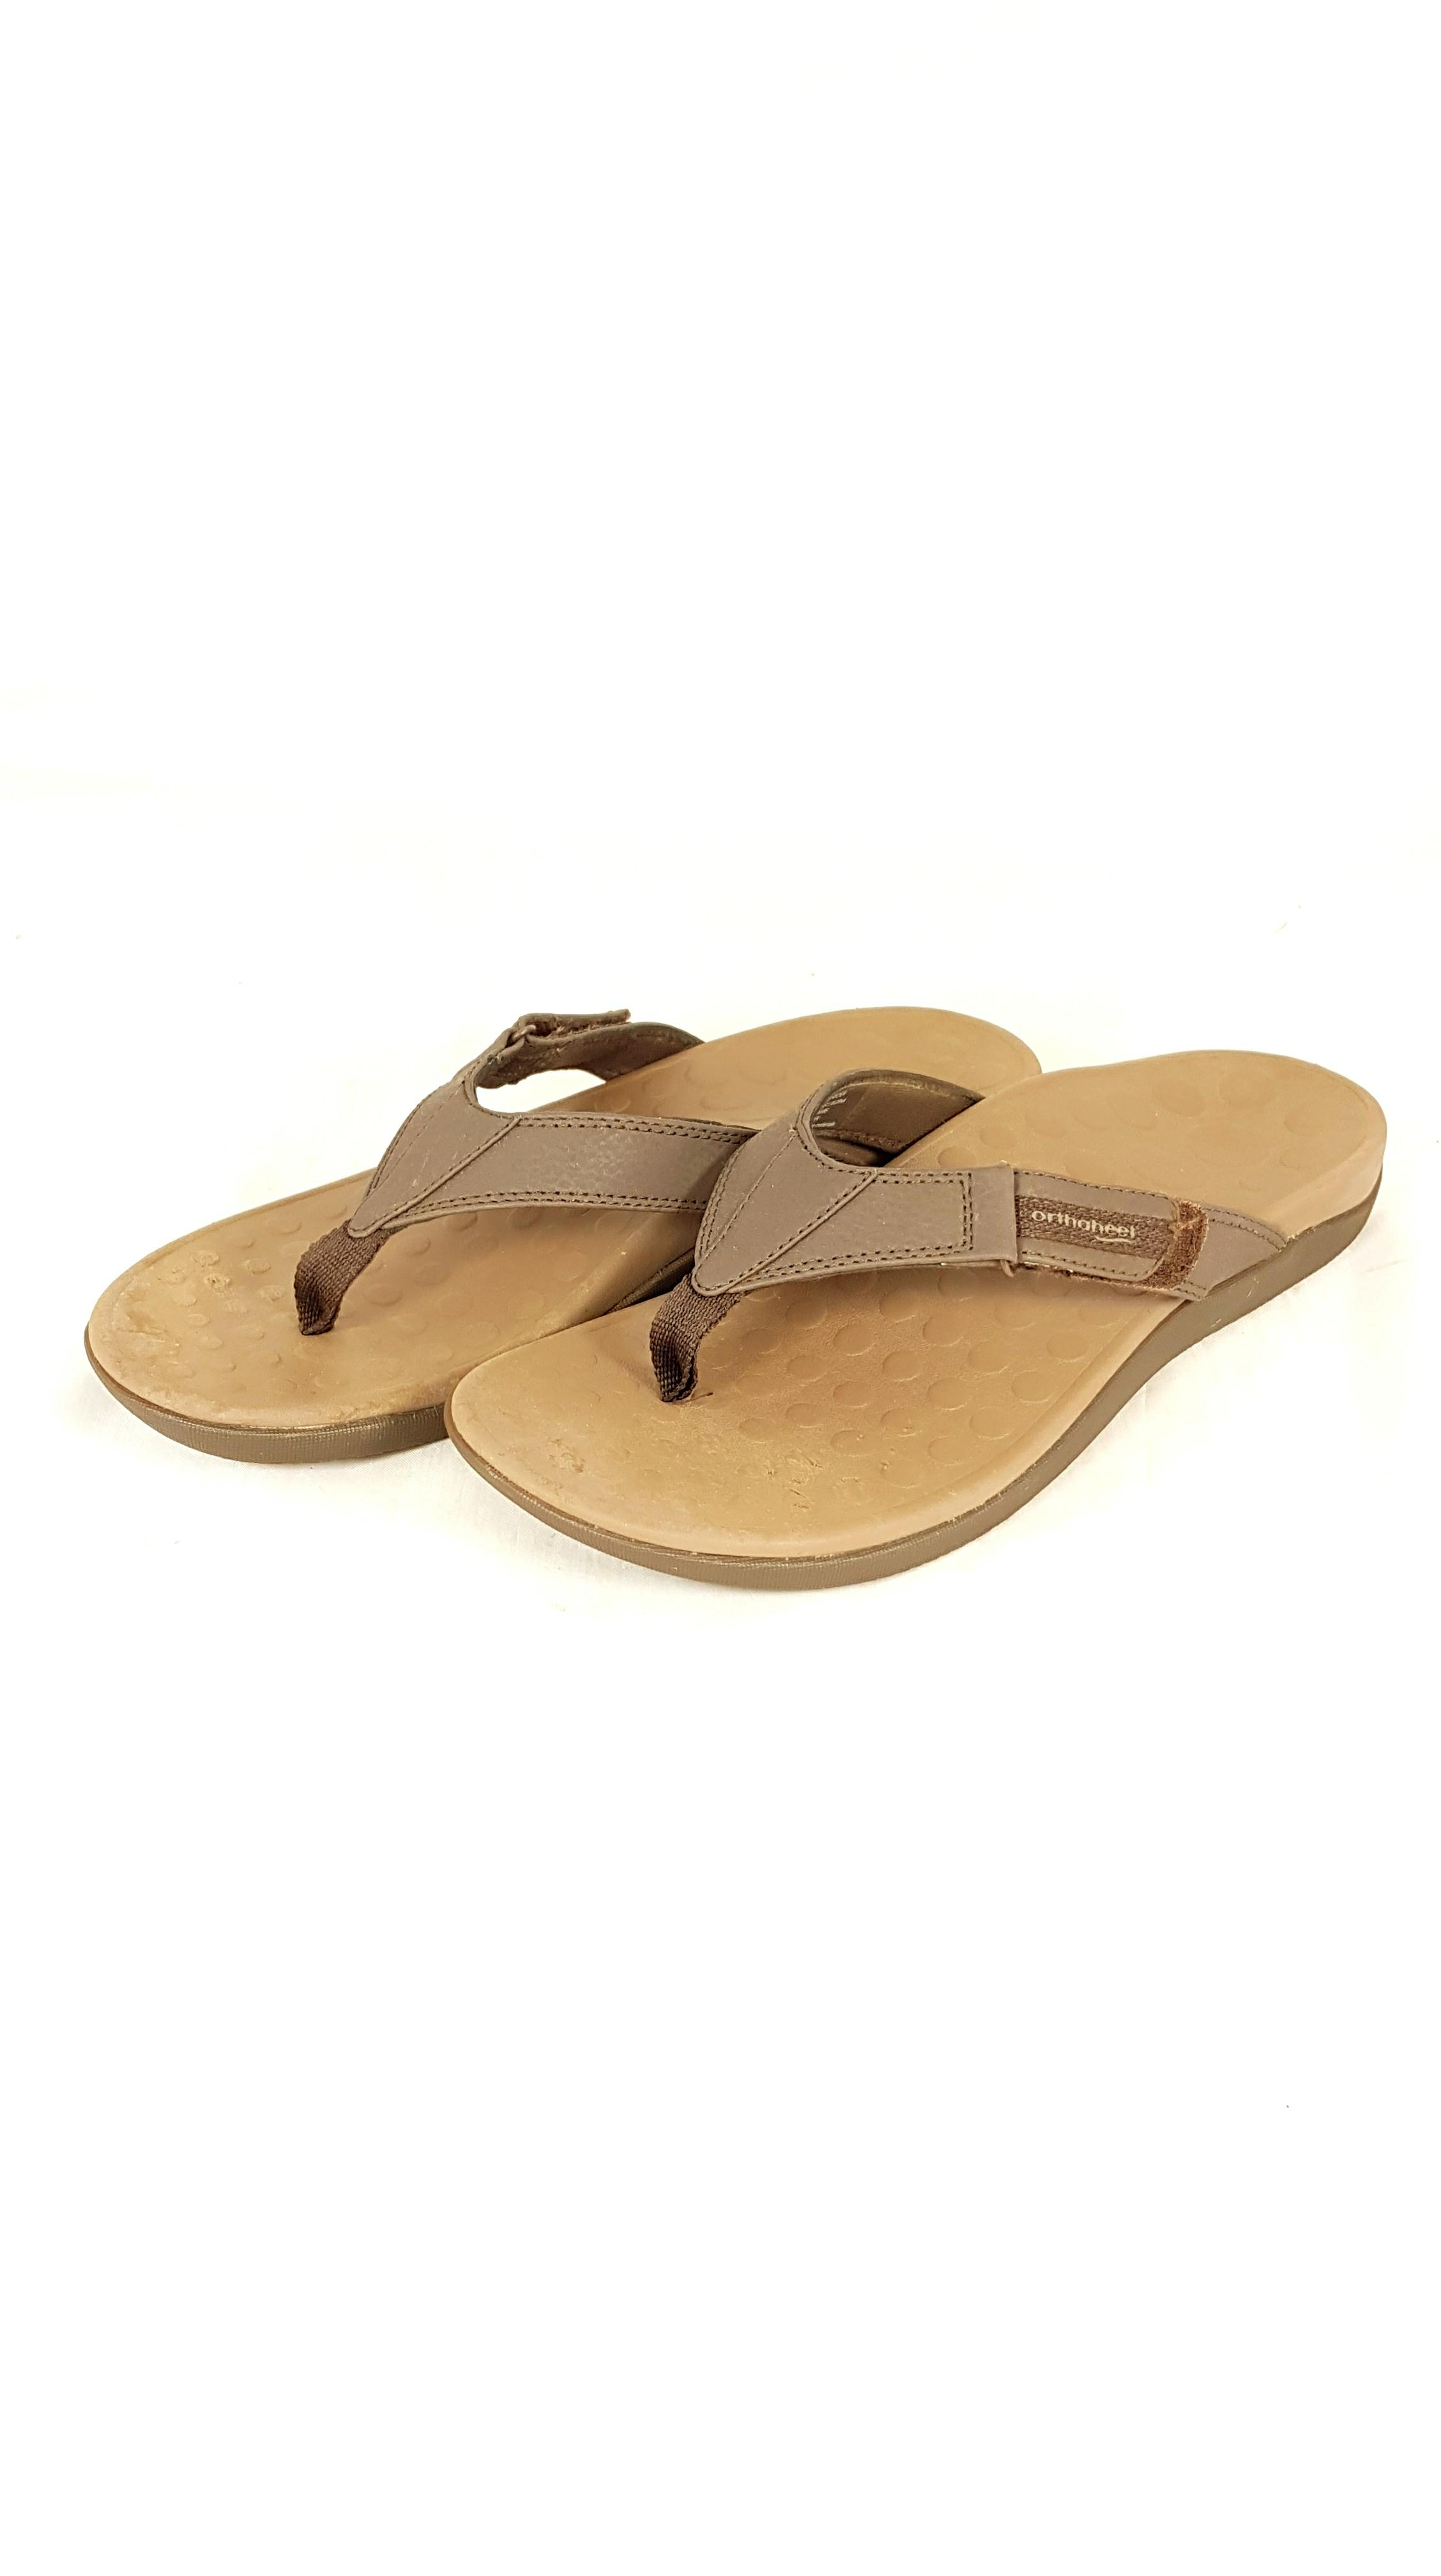 99981d2546cd Details about Men s Vionic with Orthaheel Chocolate Ryder Sandals UK 10    EU 44   US 11